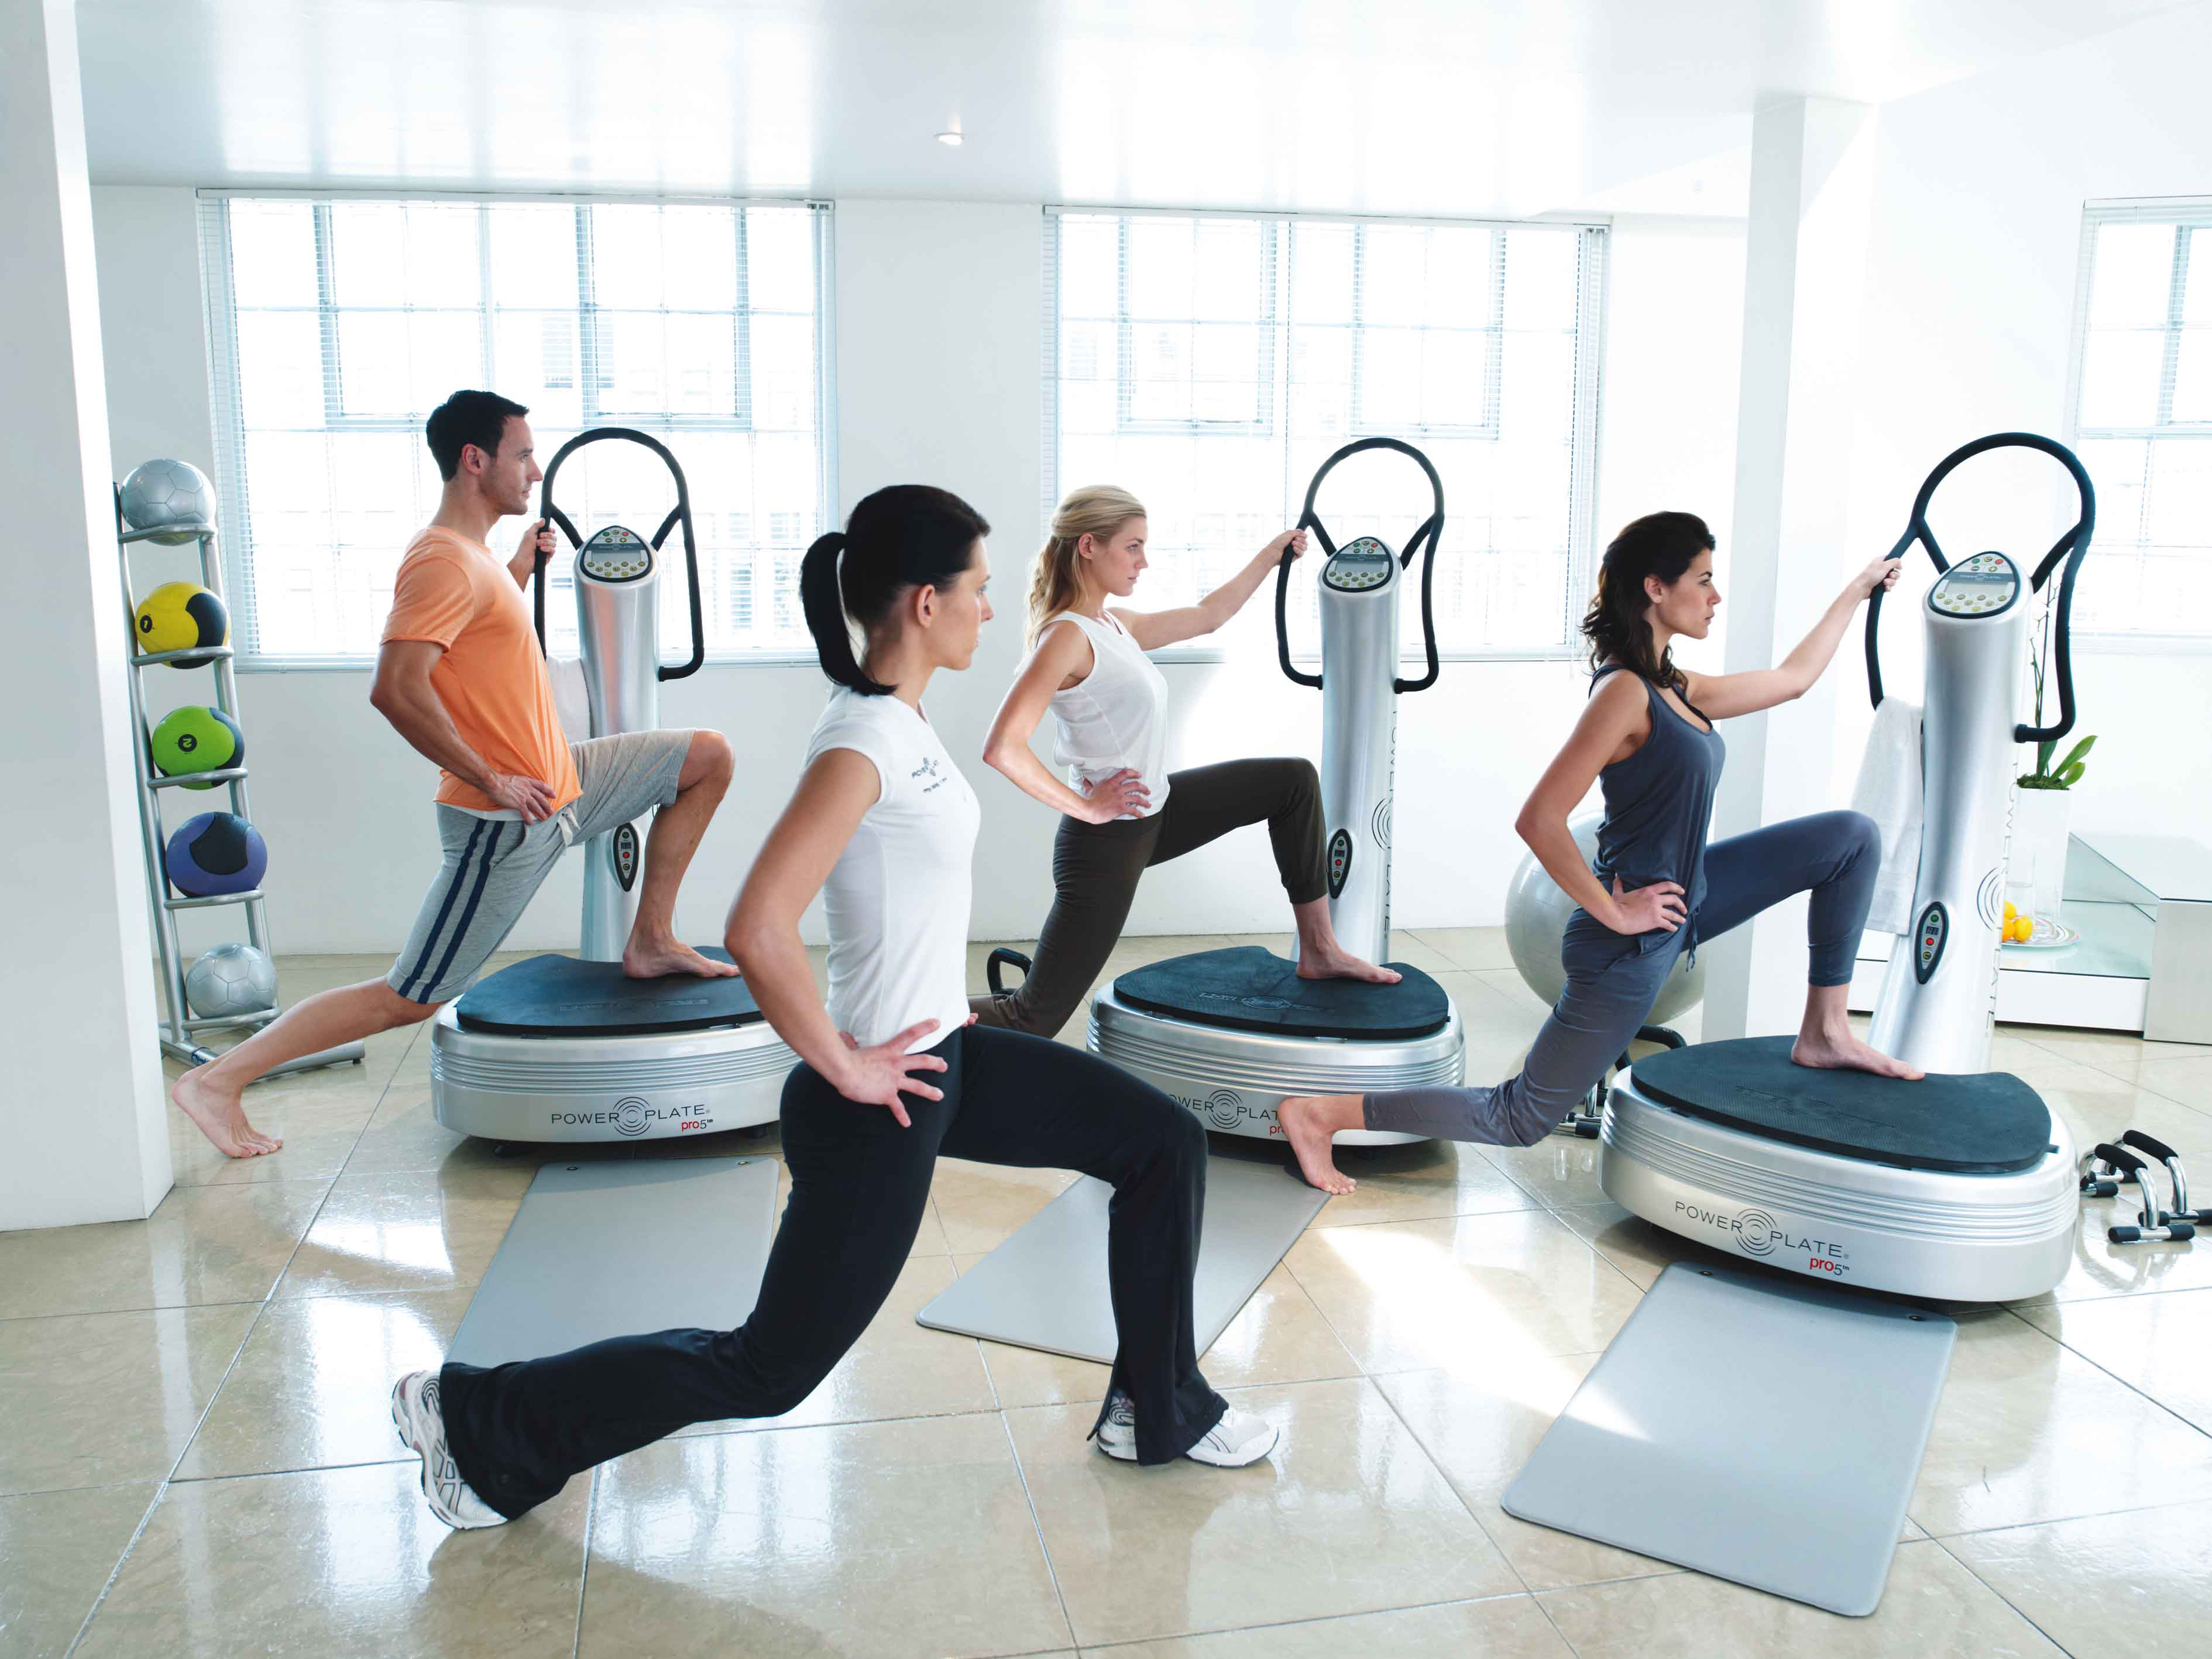 Vibration Plate exerciser: effective for Weight Loss ...